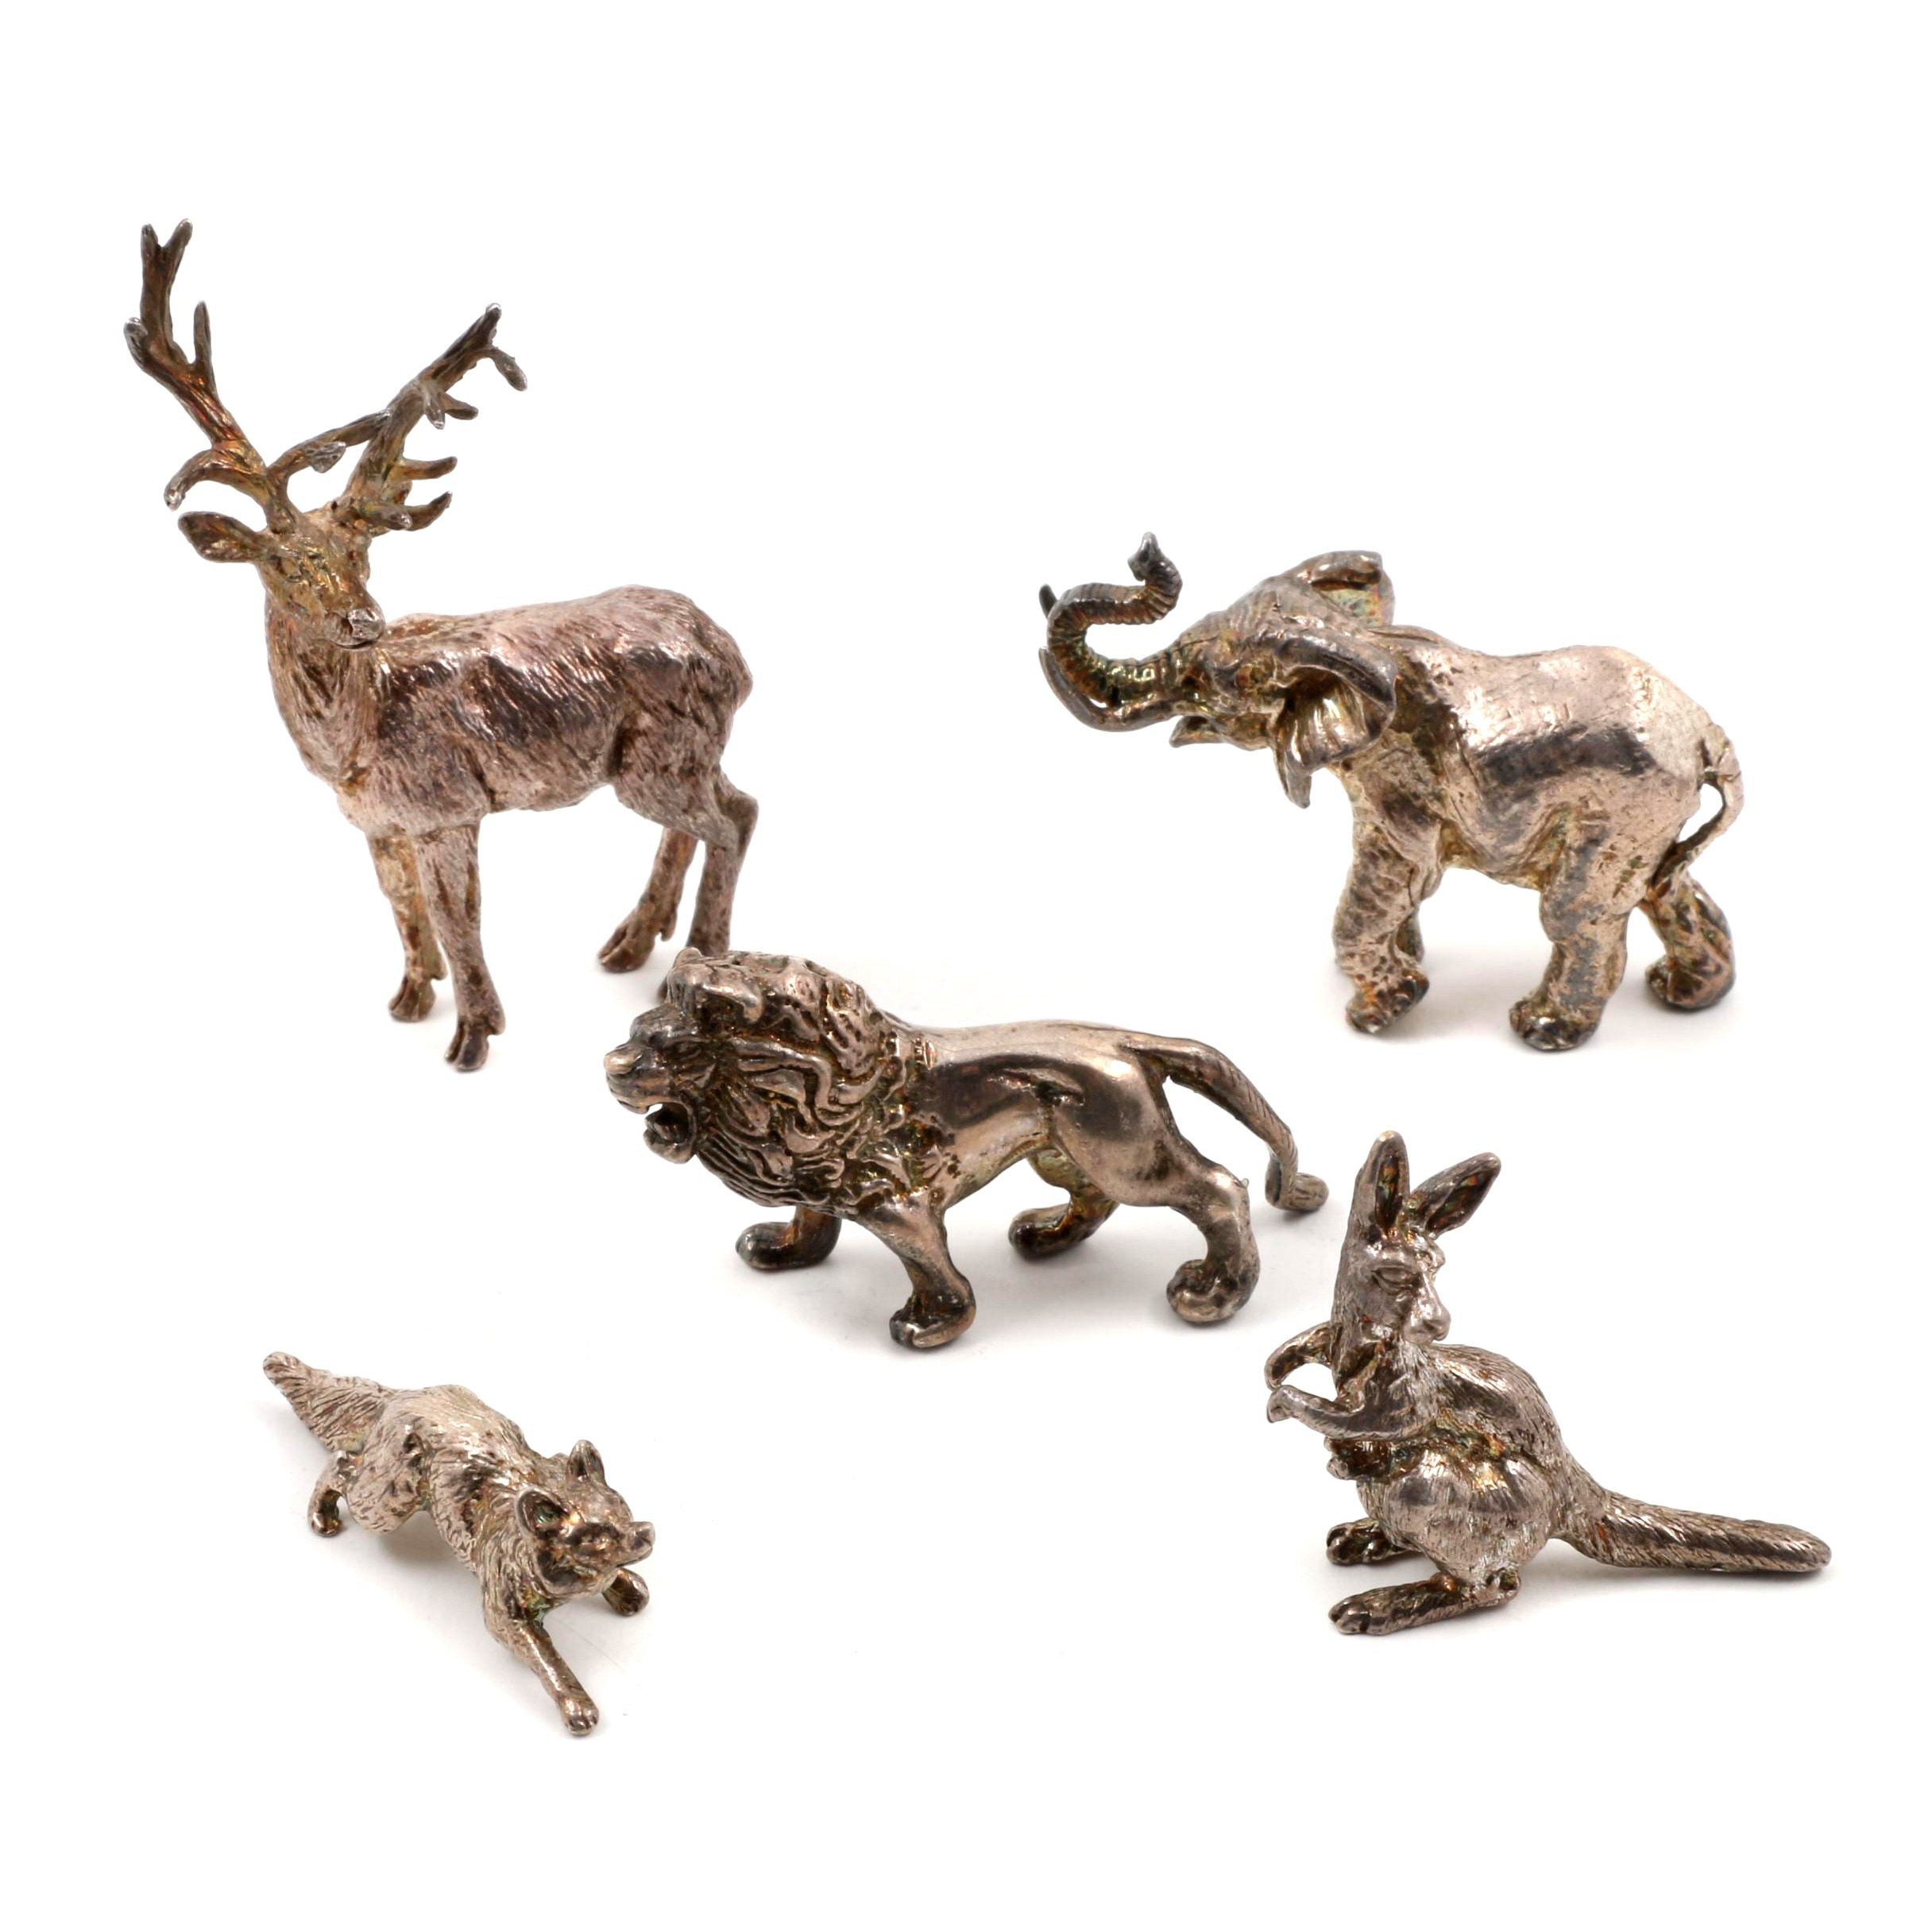 1980s English London Sterling Silver Animal Figurines